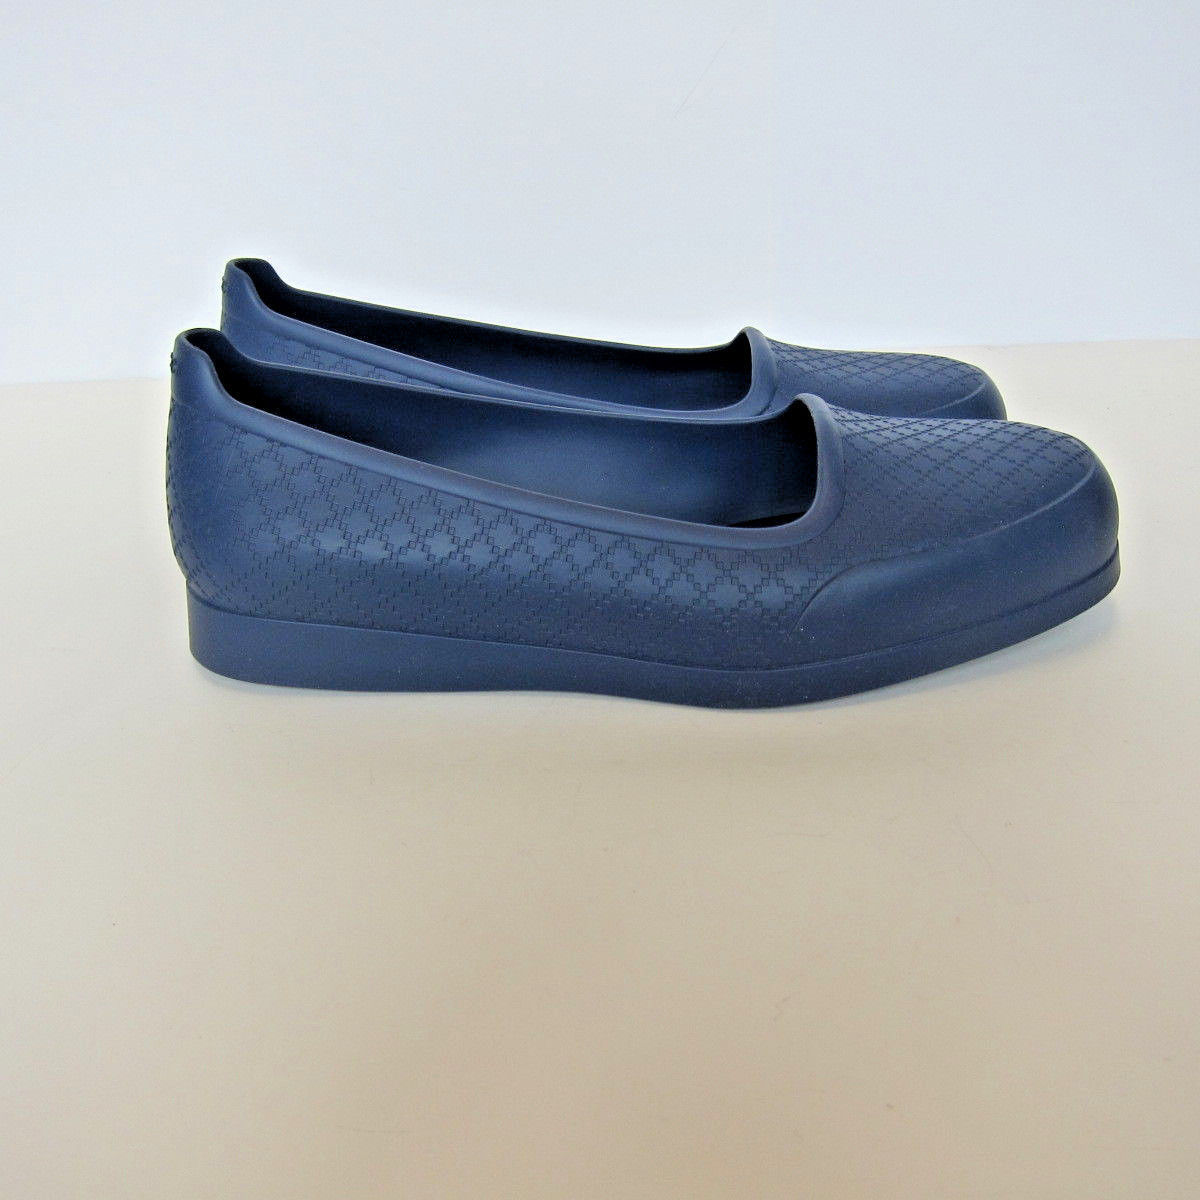 496038b6c56 L-3889940 New Gucci Diamante Royal Blue Rubber Overshoes Shoes US-8 Marked-